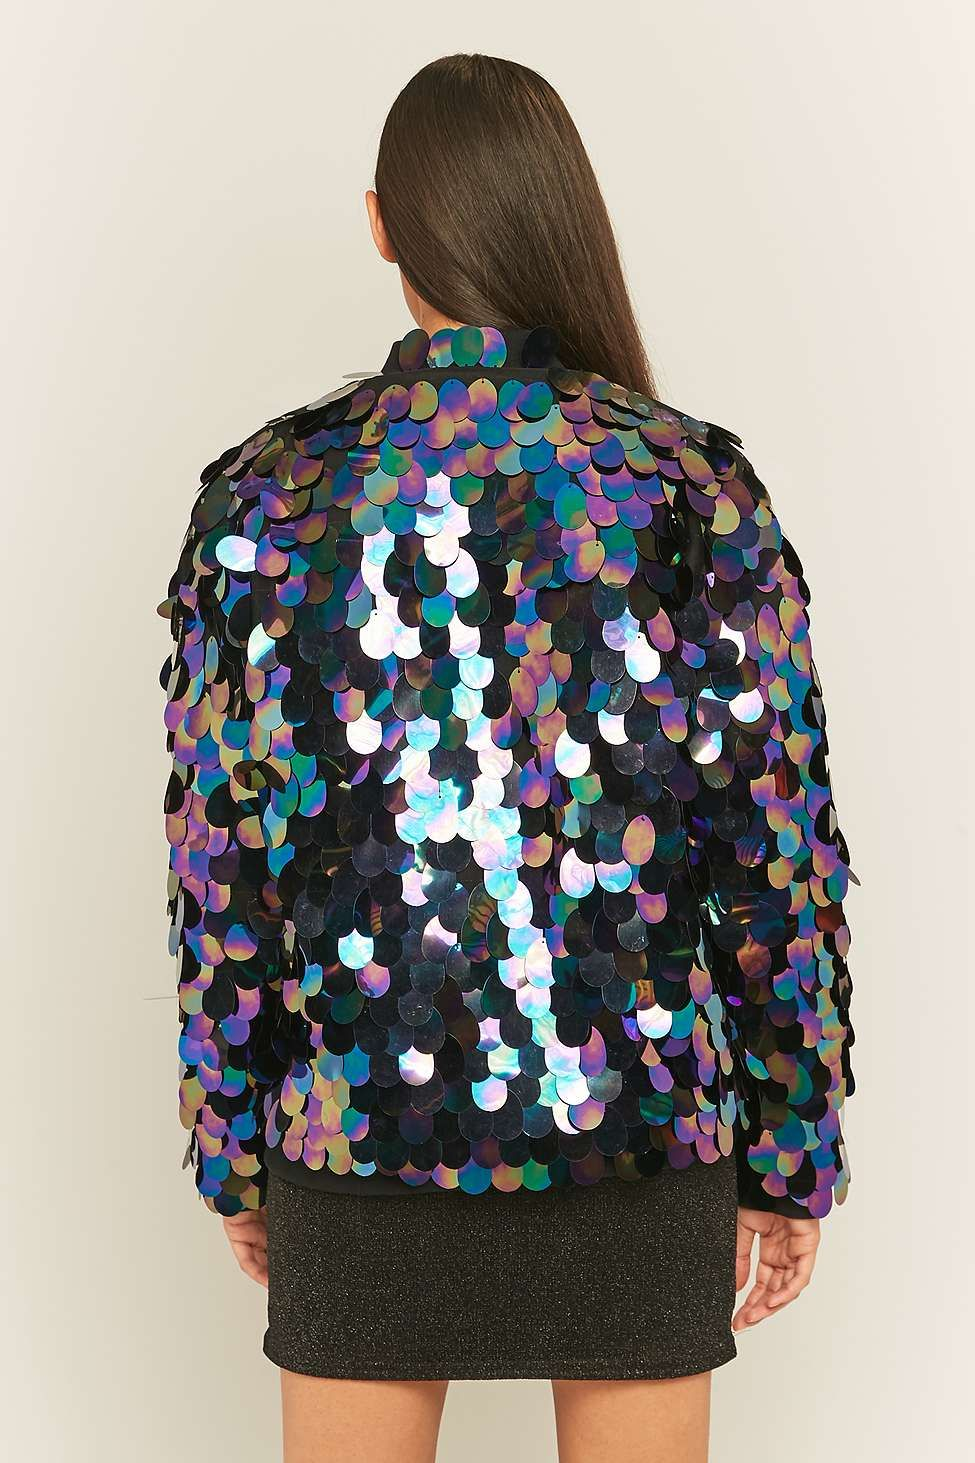 28a7c415 Sparkle & Fade Silver Sequin Bomber Jacket Silhouettes Féminines, Sequin  Jacket, Sequin Dress